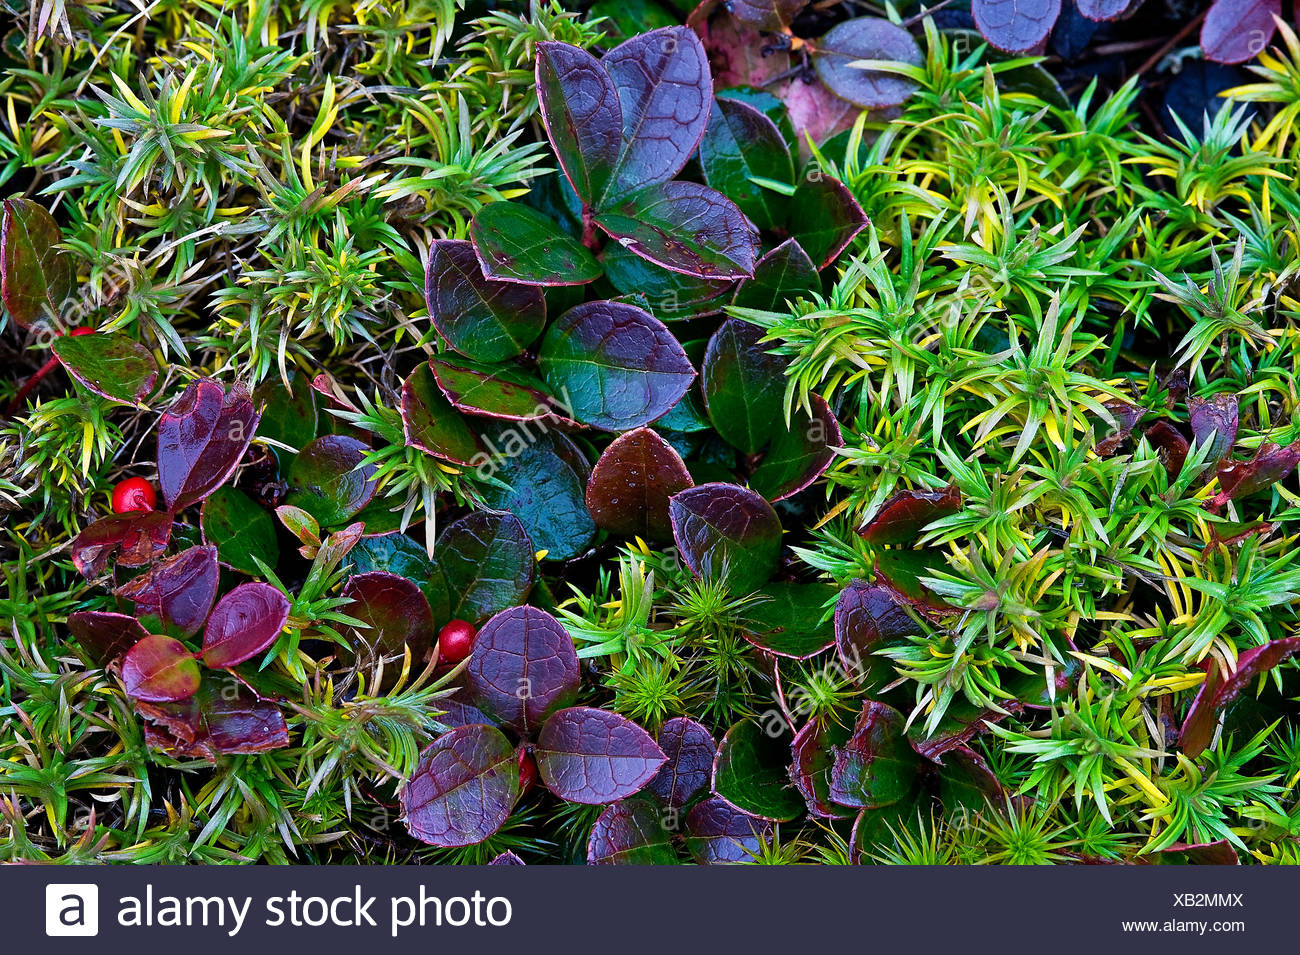 Colorful autumn ground cover plants. - Stock Image